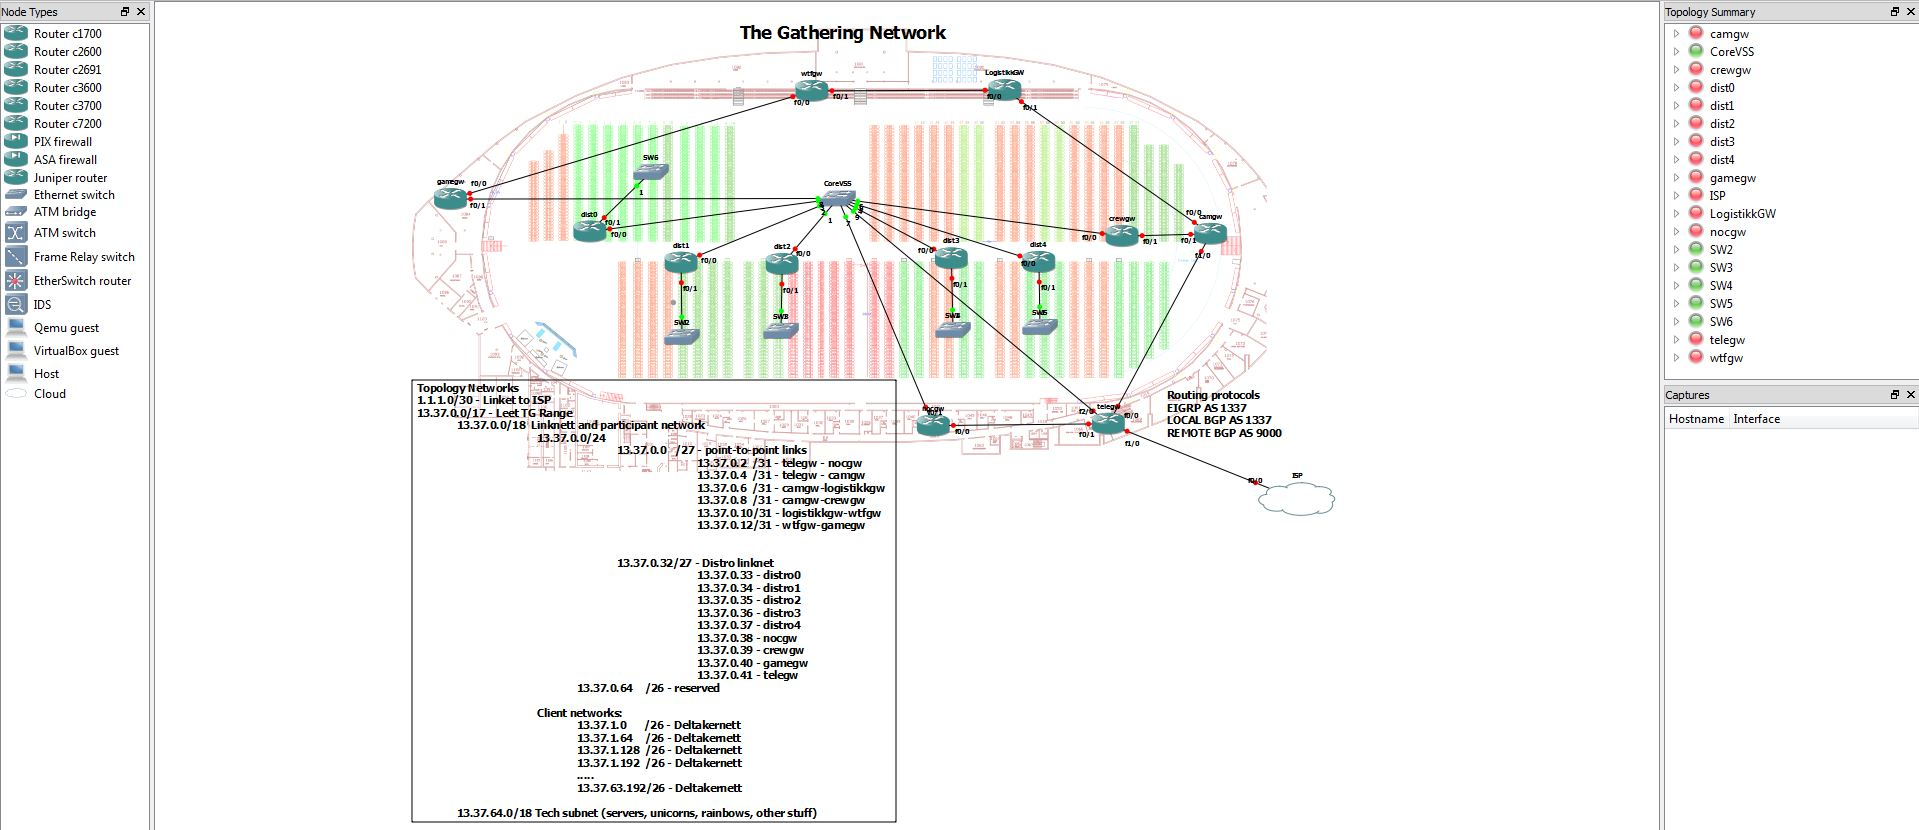 The Gathering topology